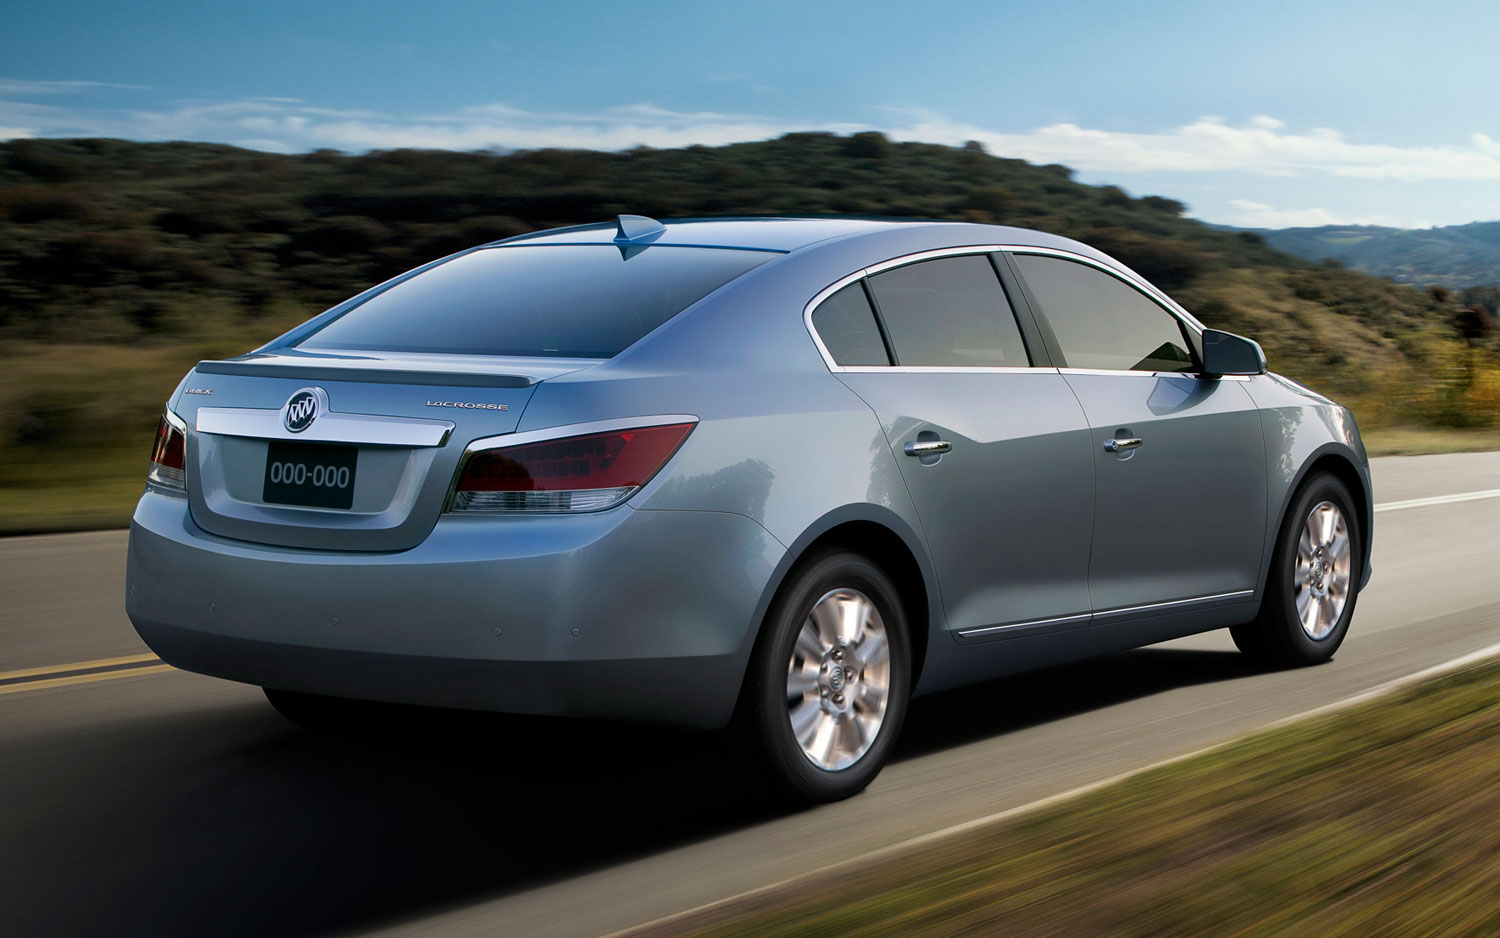 2012 Buick Lacrosse Eassist Priced From 30 820